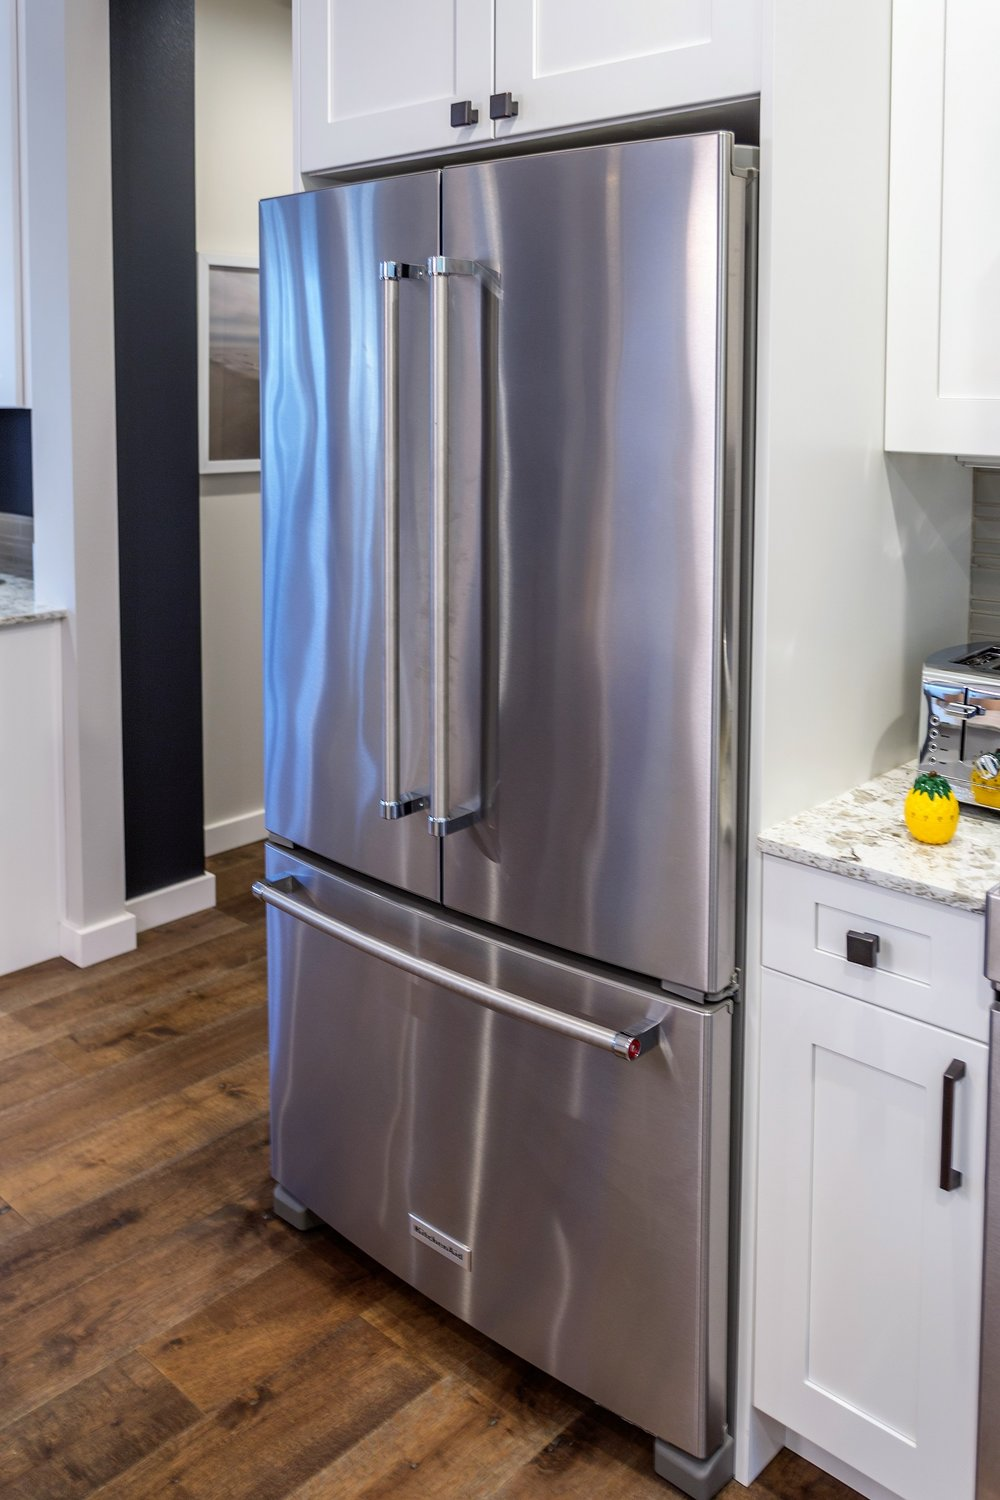 stainless steel, port ludlow, kitchen